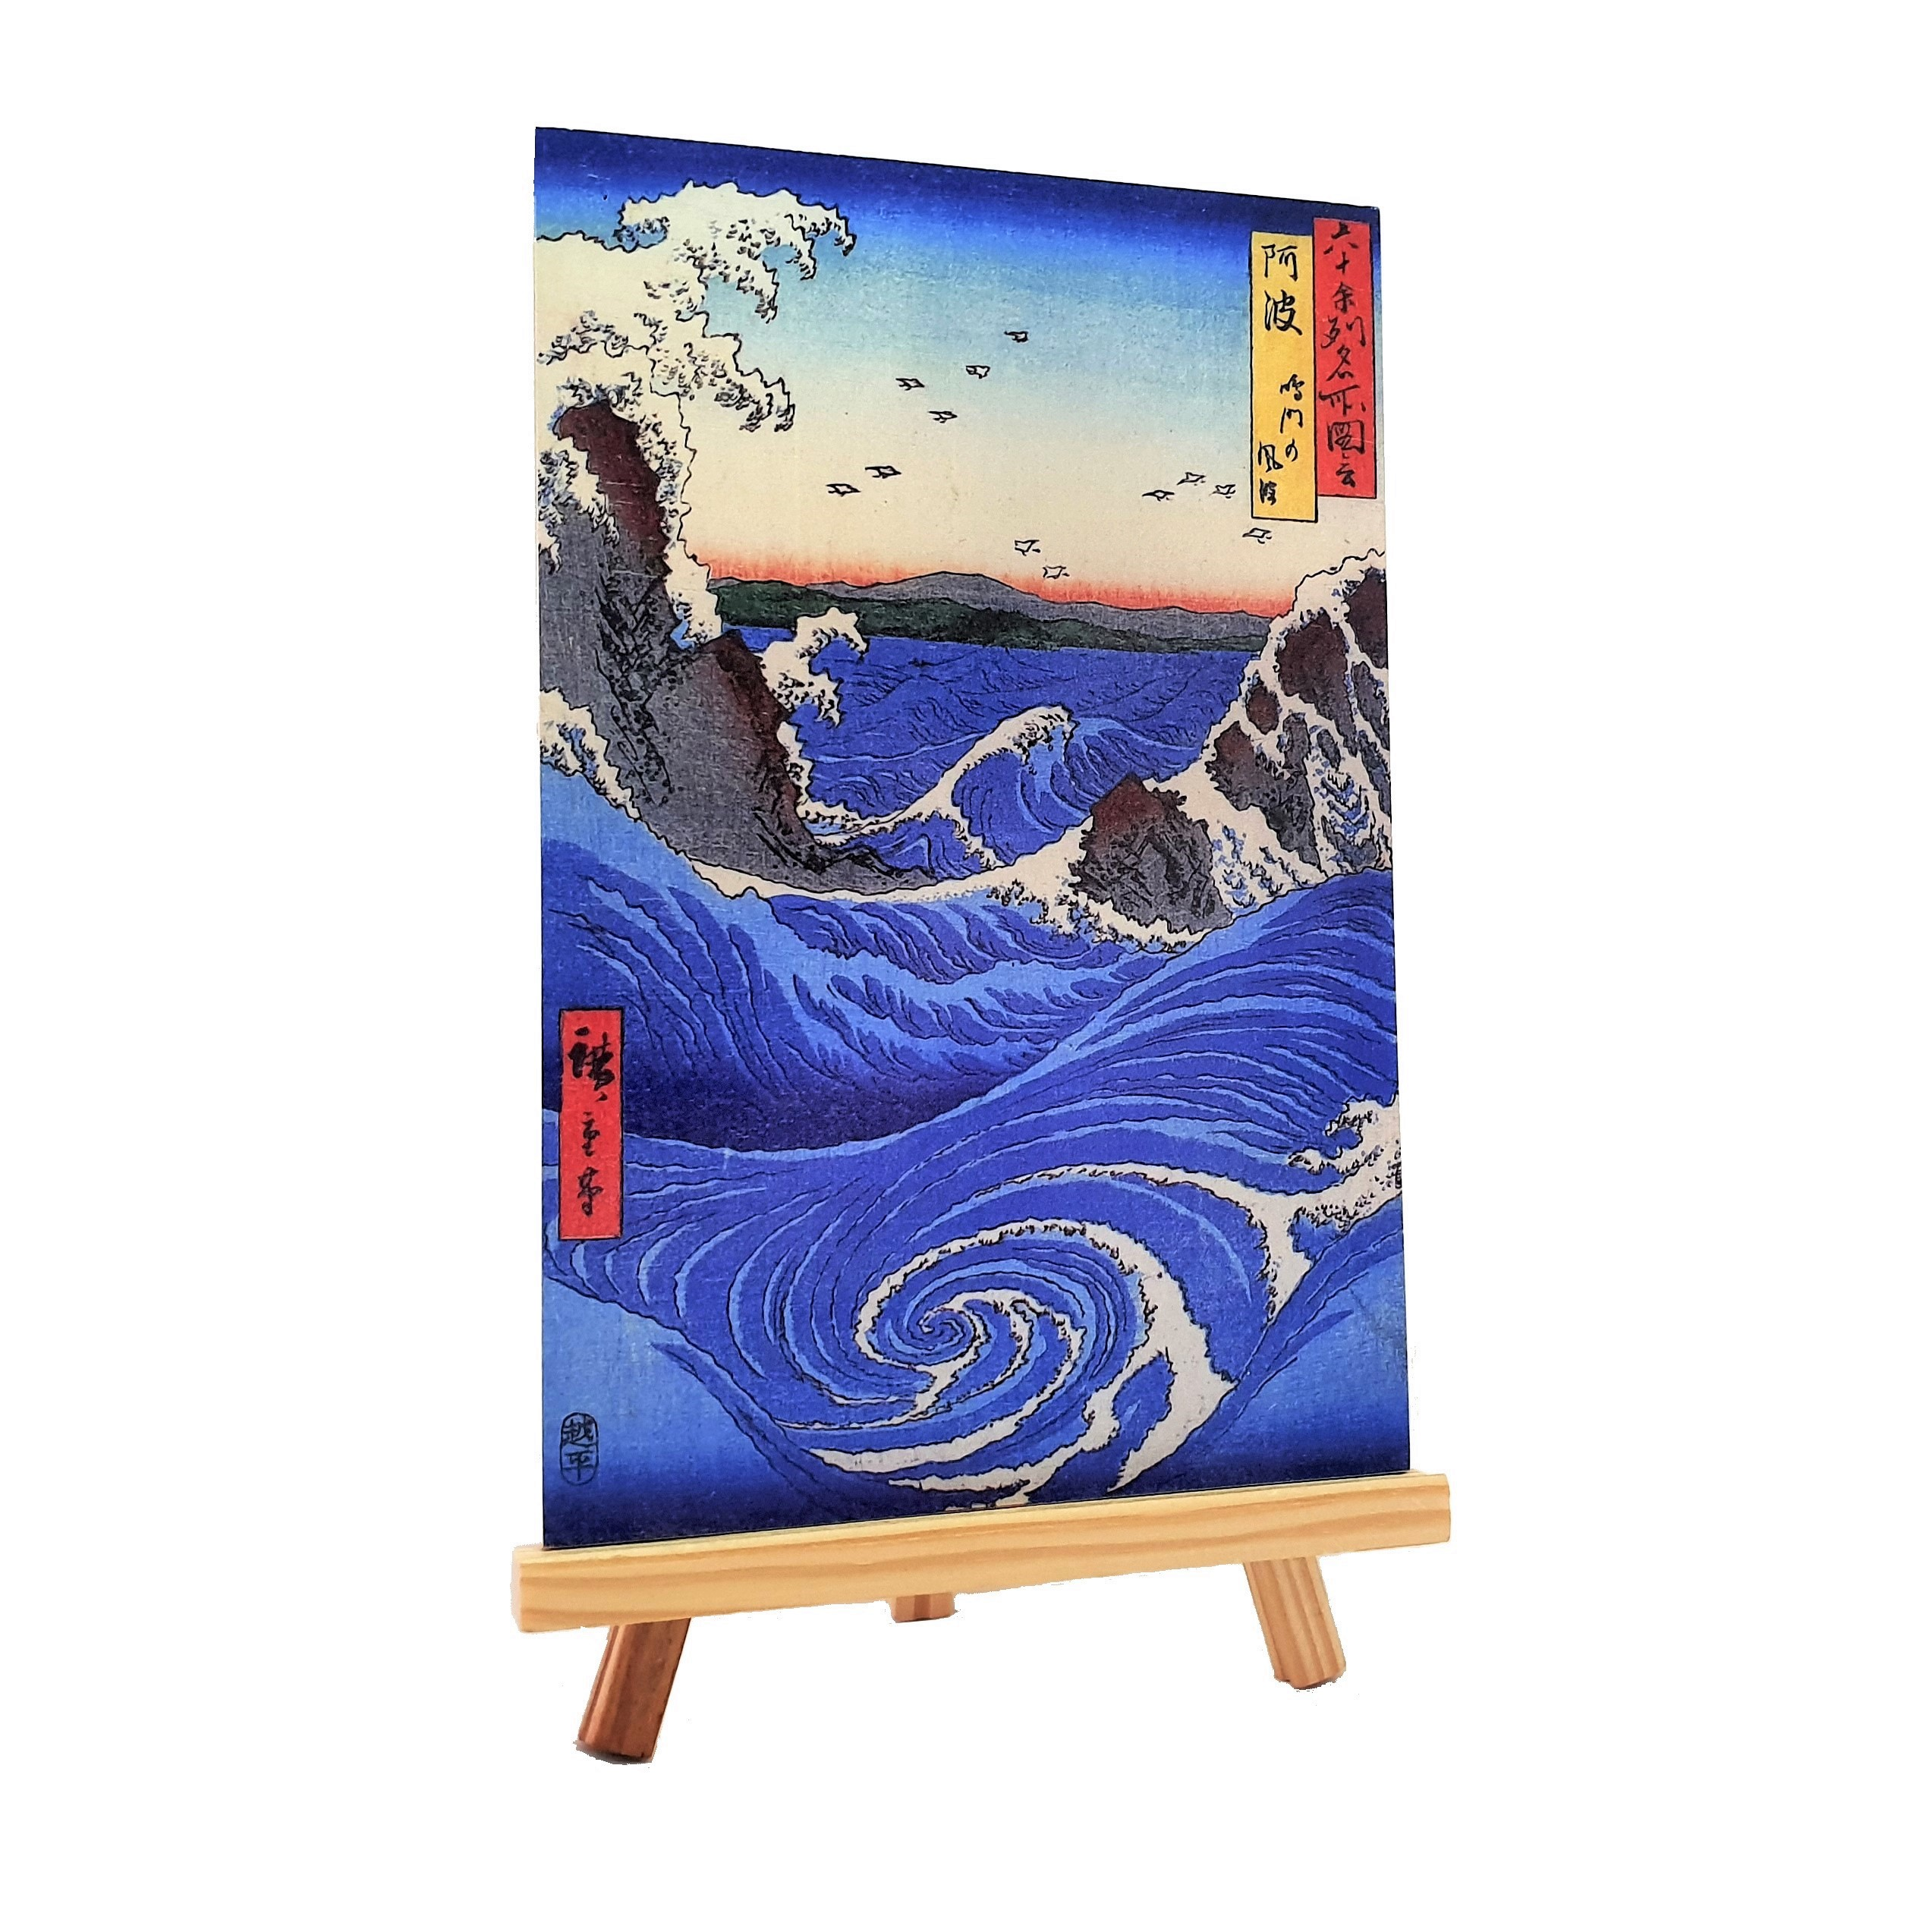 Story Horse storyhorse Japanese Hiroshige Hokusai Hasui Great Wave wood block prints original timber painting art pictures on wood photos inks custom ukiyo-e artworks floating world original made in Western Australia WA marine plywood screenprint artisan local Perth Fremantle Subiaco Farmers Market South Perth community Kalamunda Makers Market rustic cool gift ideas gifts wall buy online for sale shop delivery sell